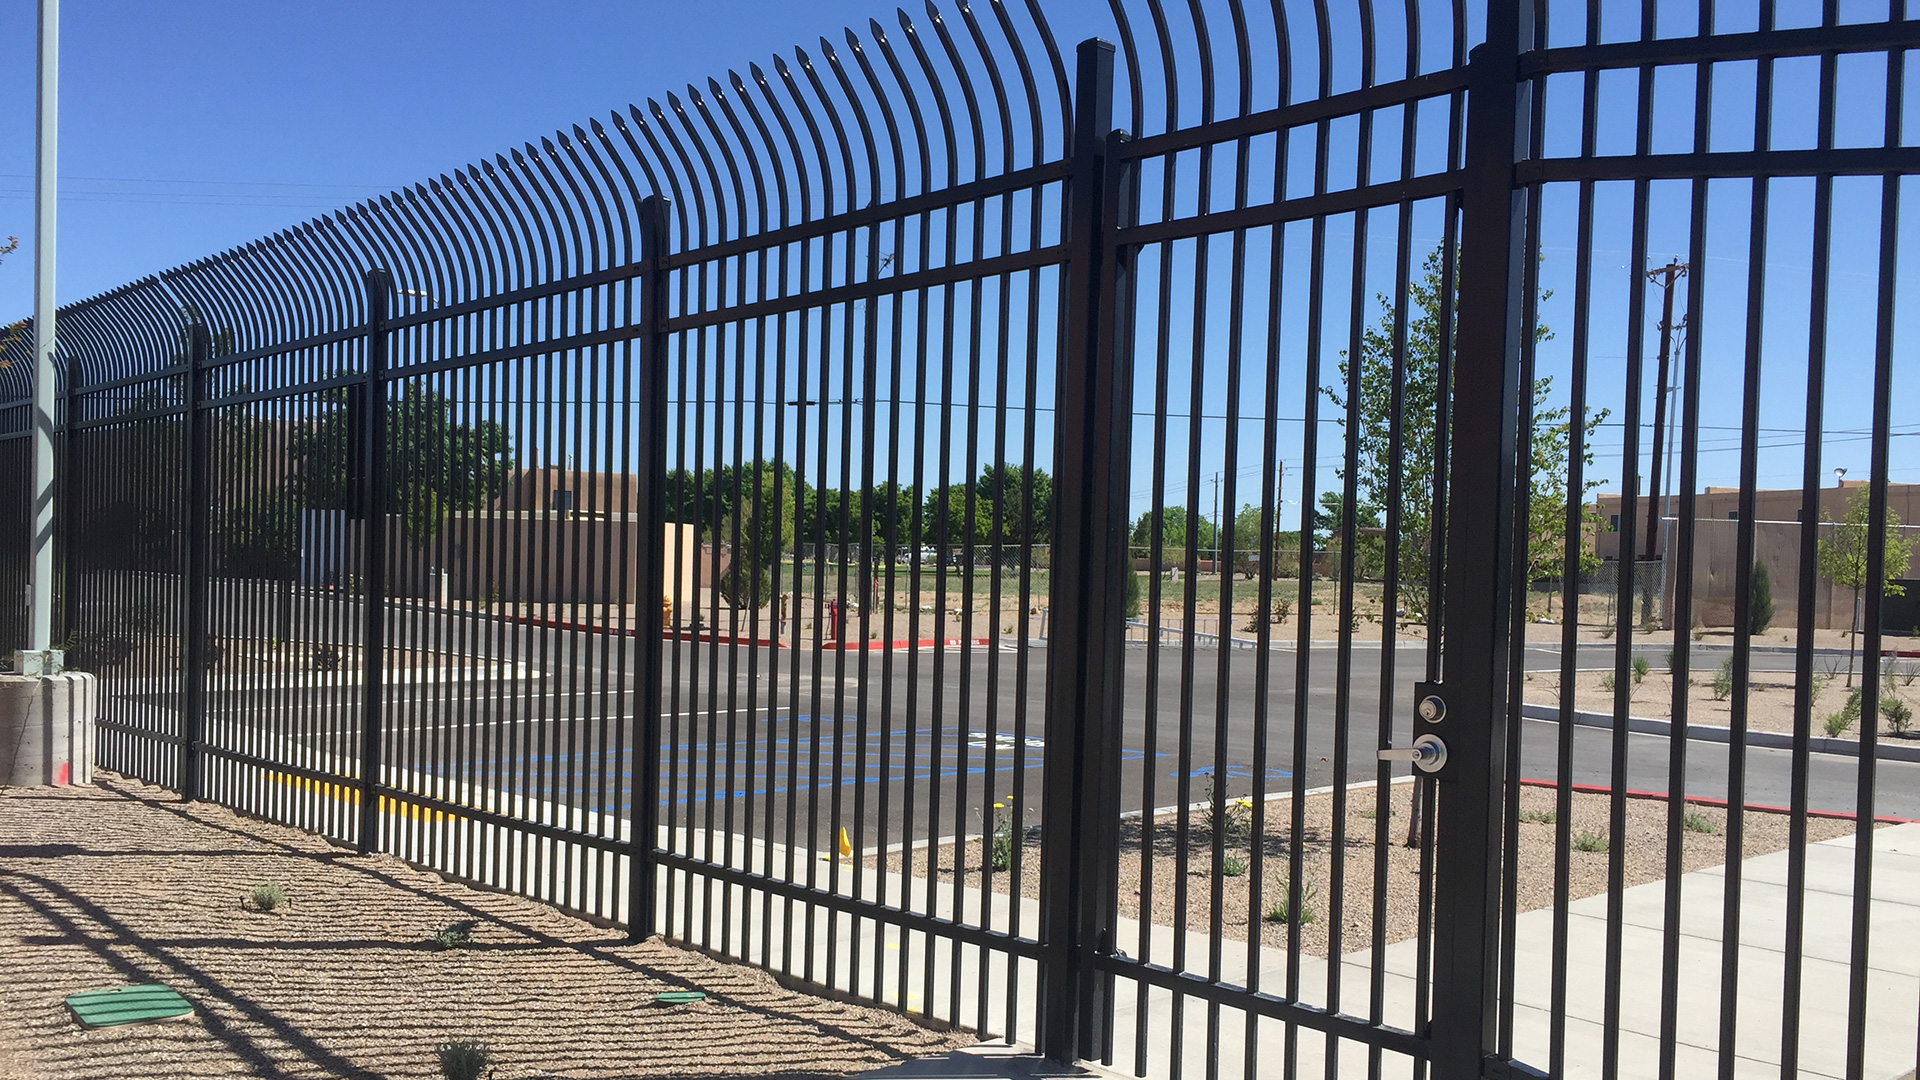 Ornamental wire fencing - We Work With Many Leading Manufacturers To Offer The Very Best In Ornamental Iron Fencing Scott S Fencing Works With The Military Sports Facilities